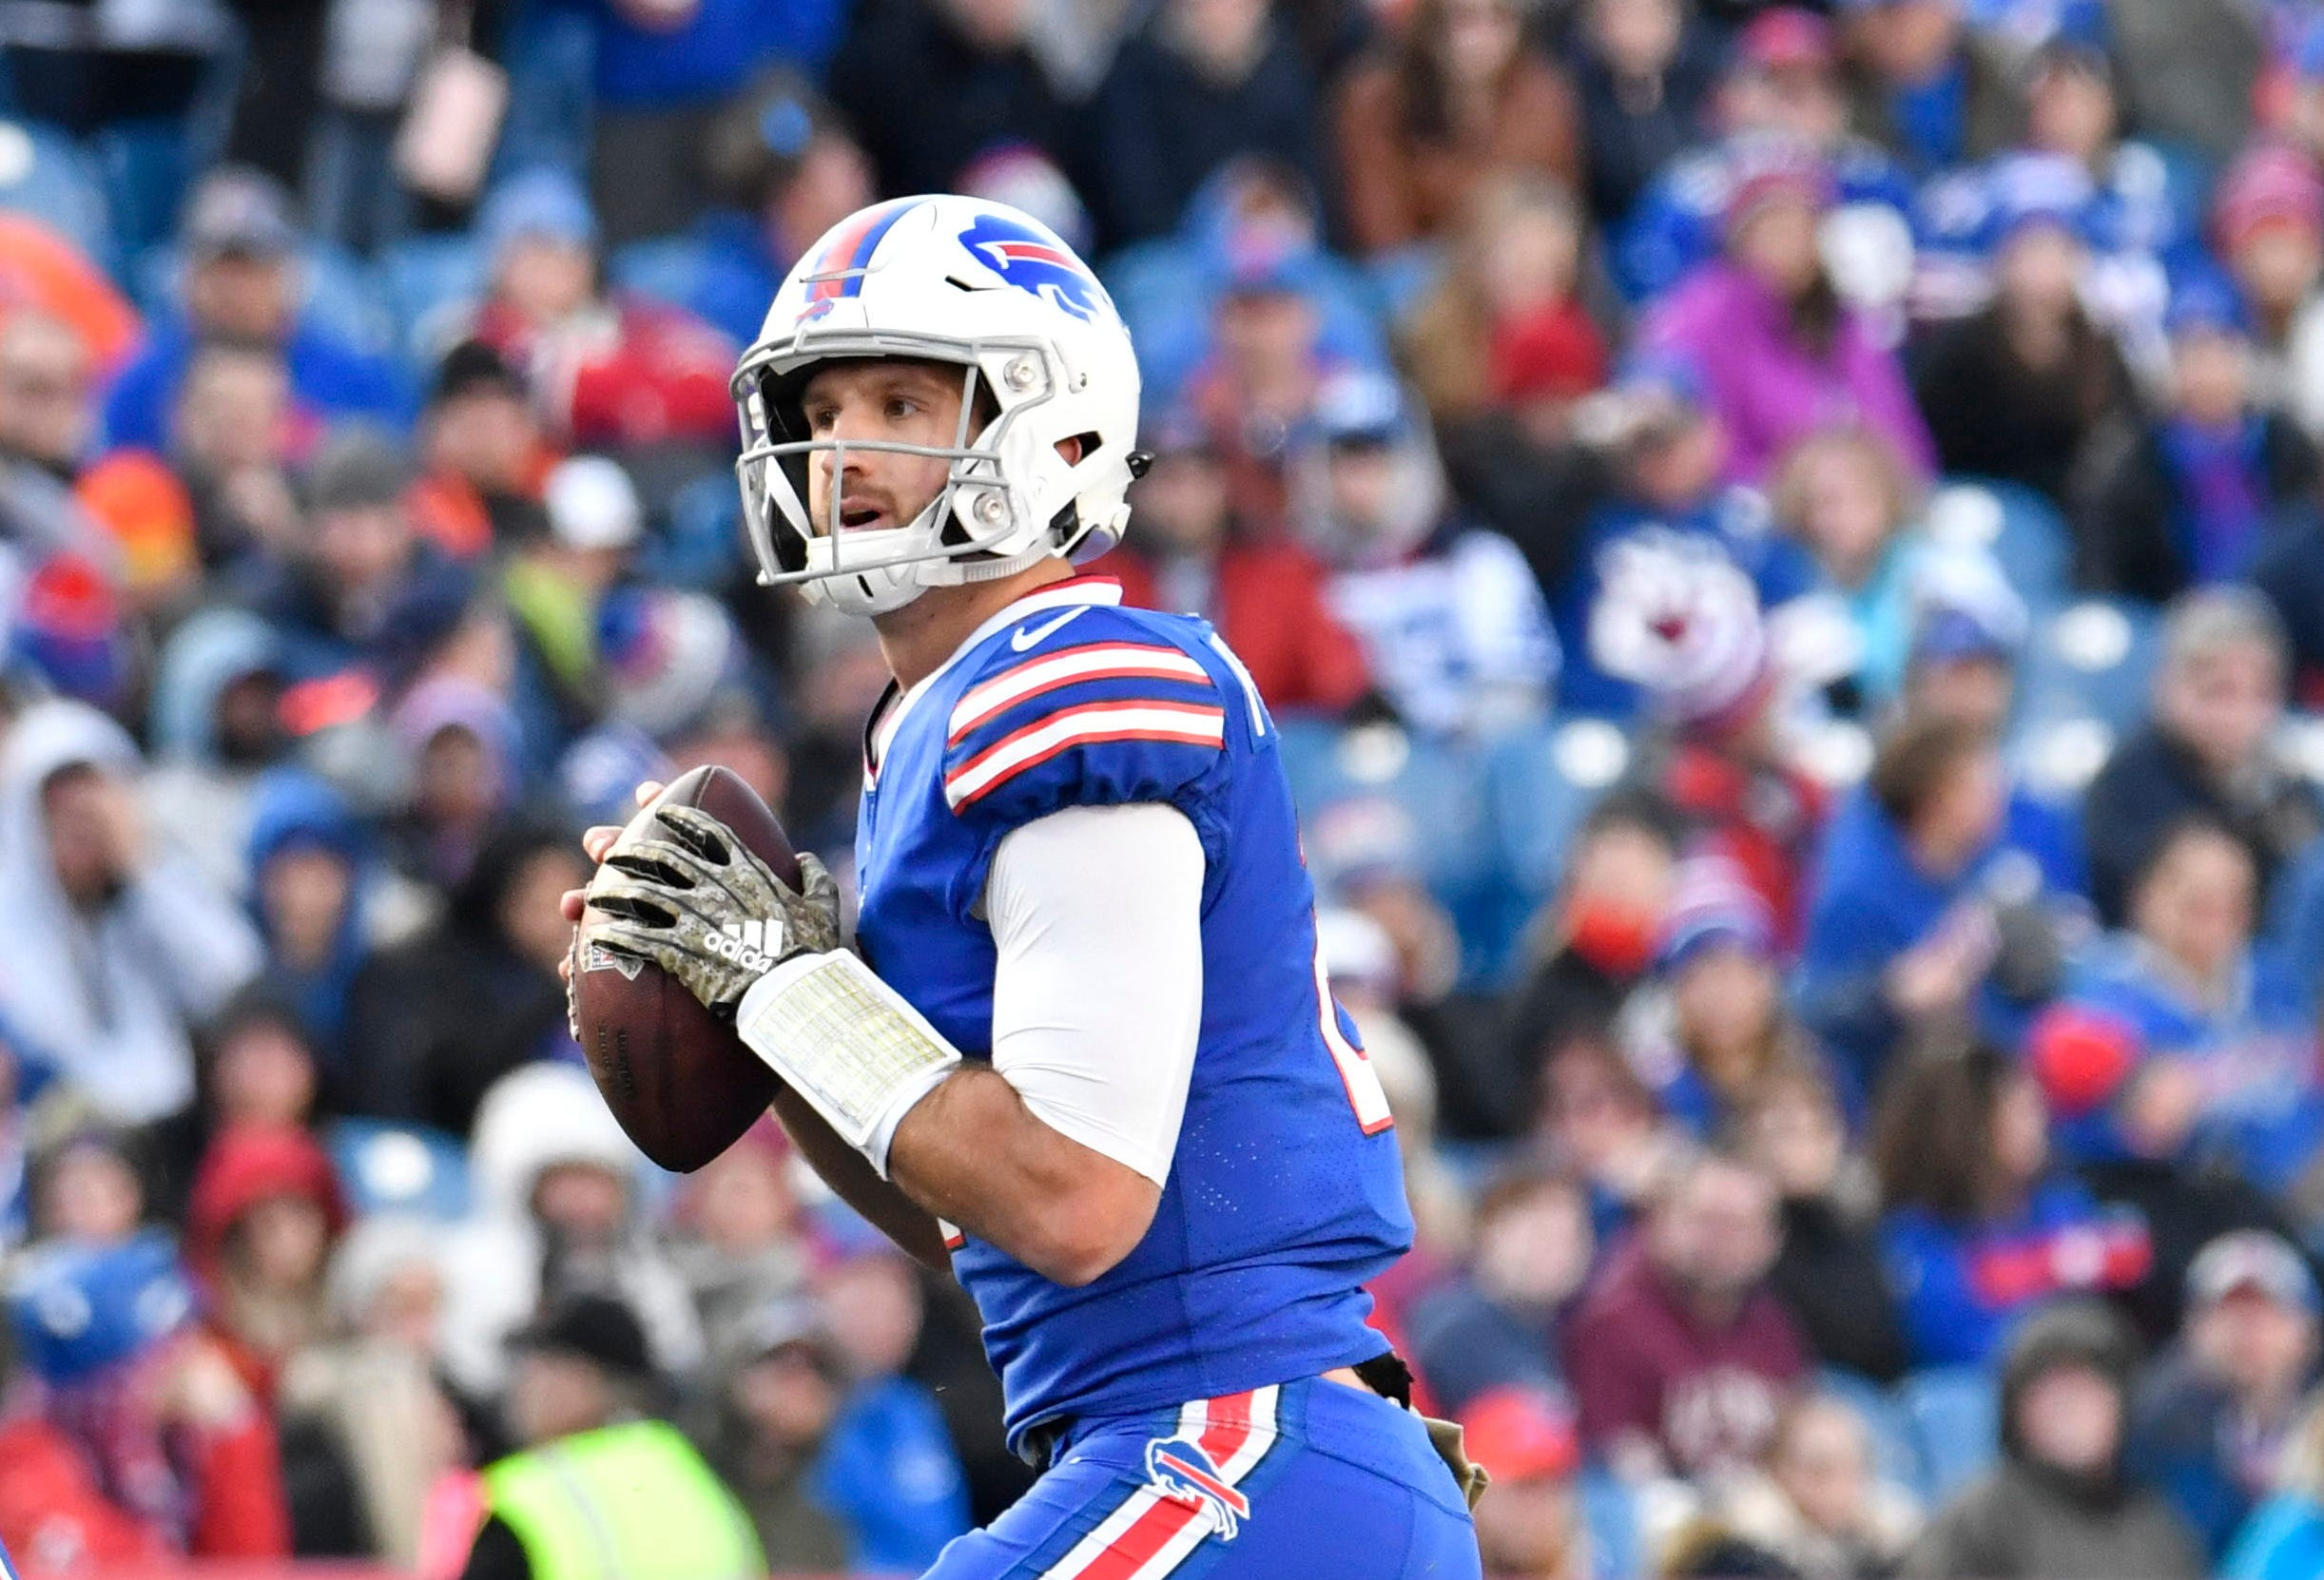 How bad are things for Nathan Peterman? EJ Manuel is taking shots at him